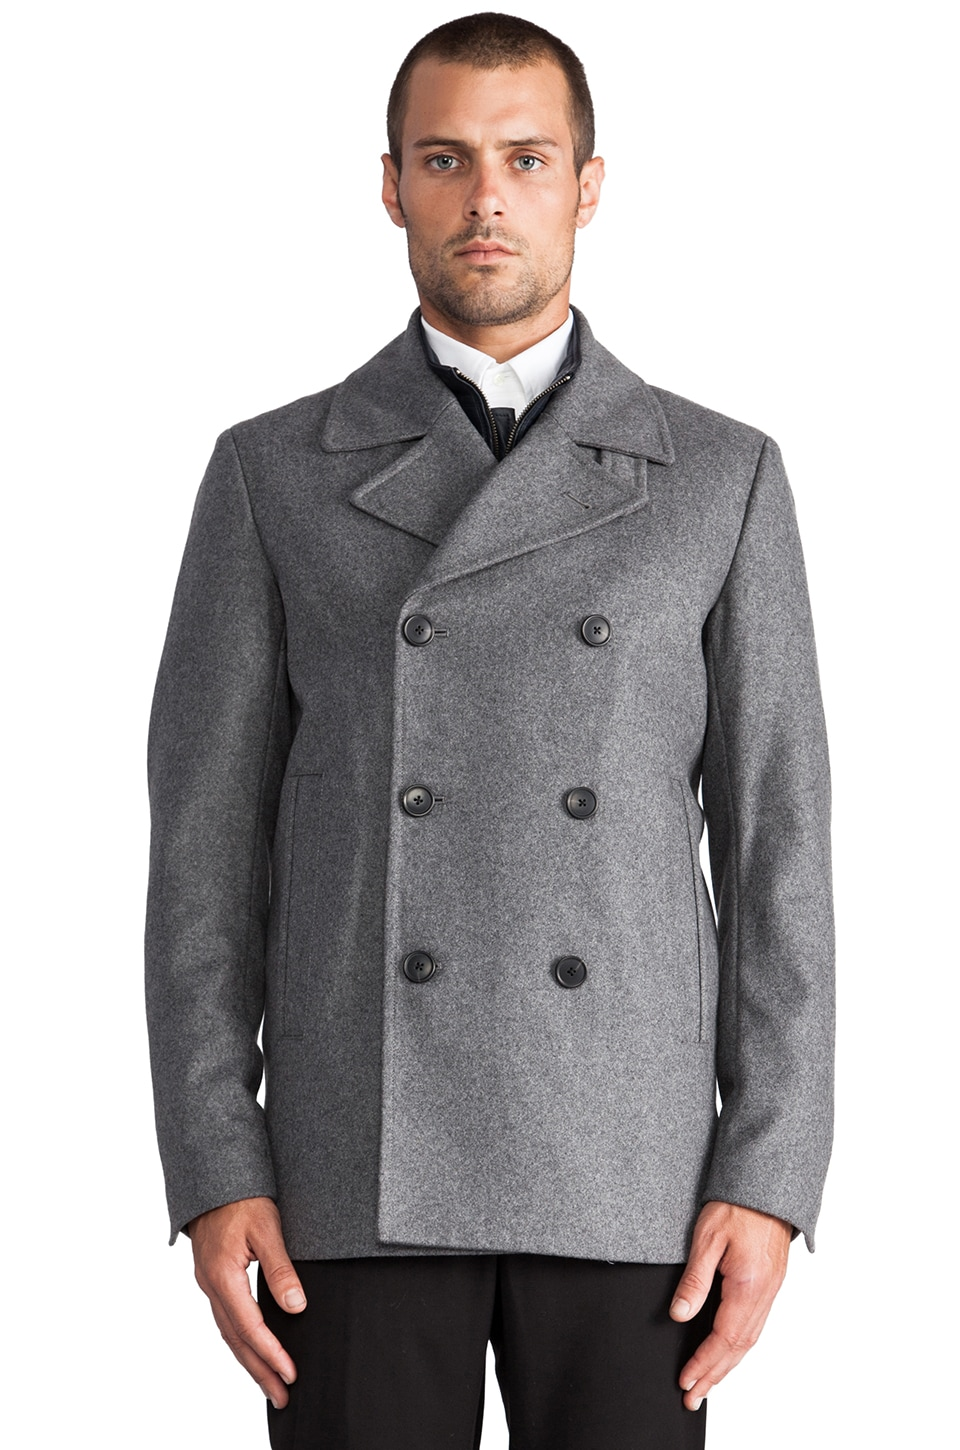 Theory Tanker Coat in Grey Heather